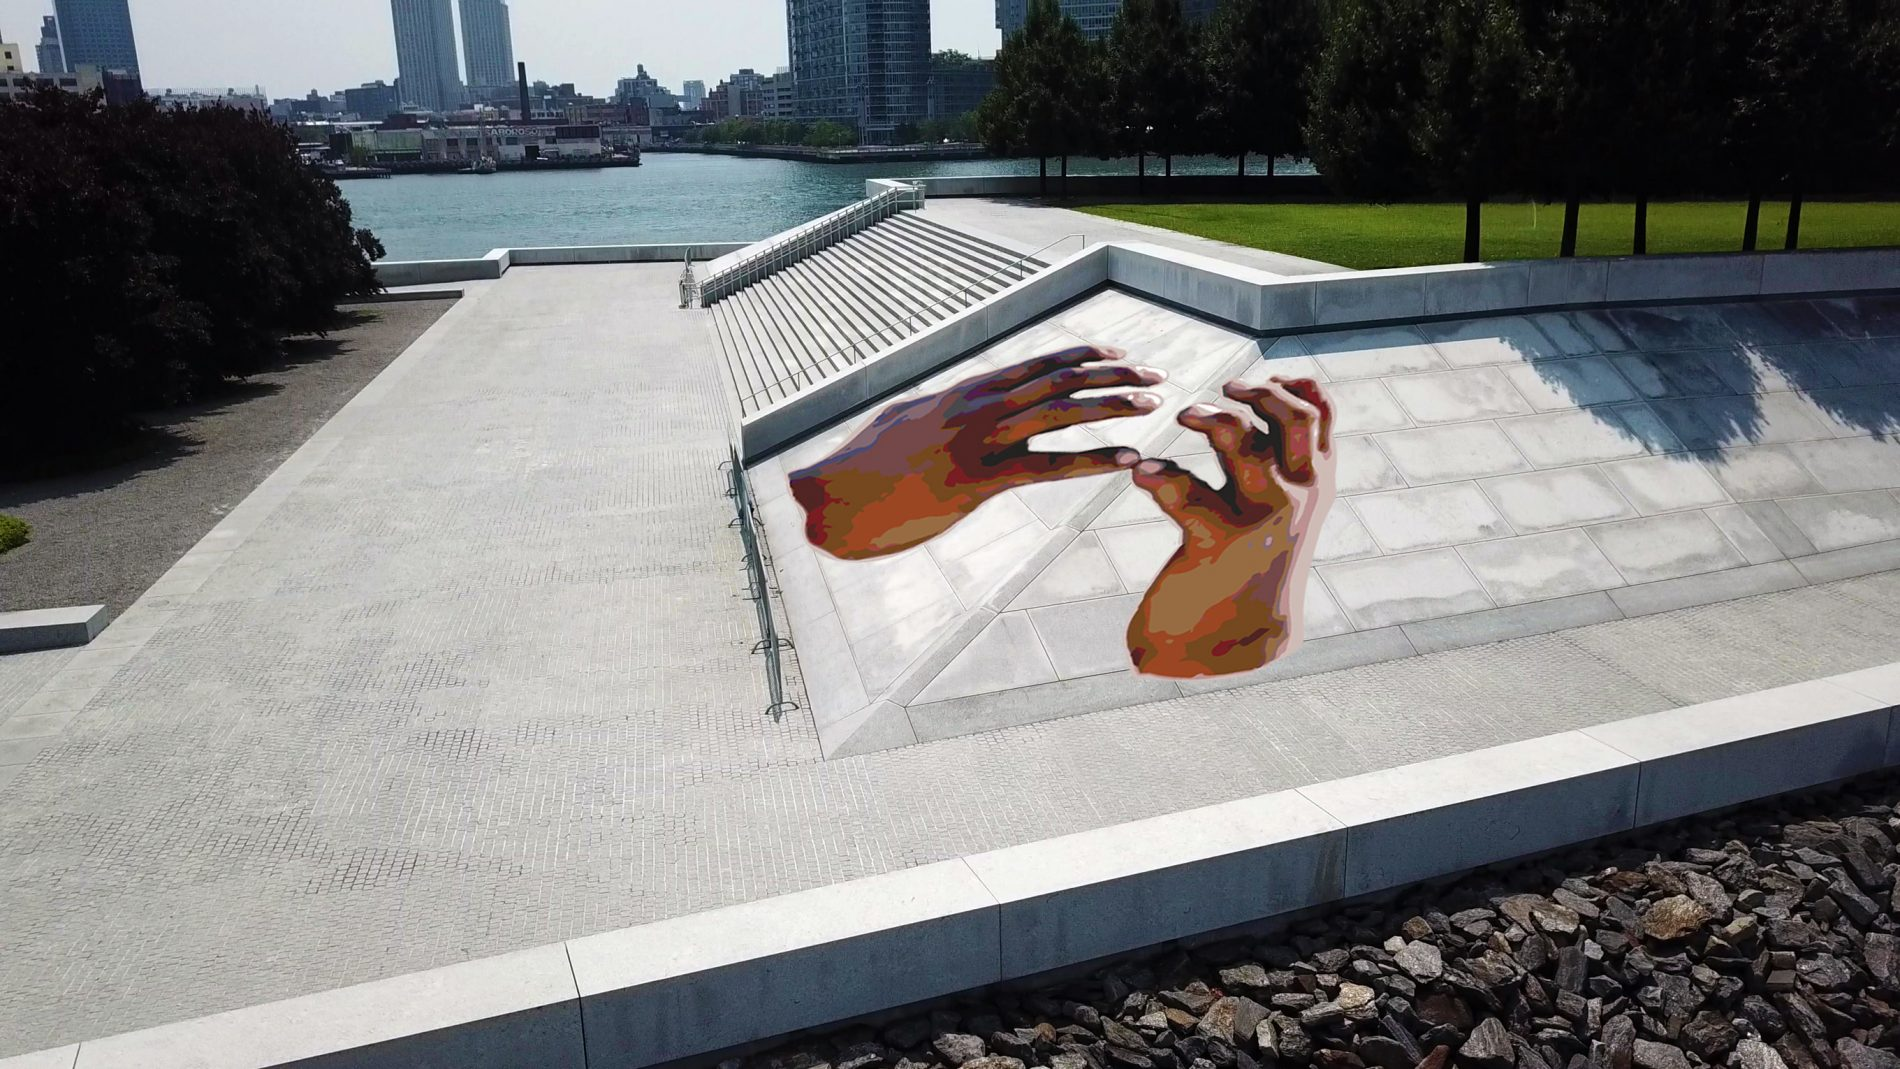 Rendering: Shaun Leonardo, Between Four Freedoms, 2021. Courtesy of the artist and Four Freedoms Park Conservancy.